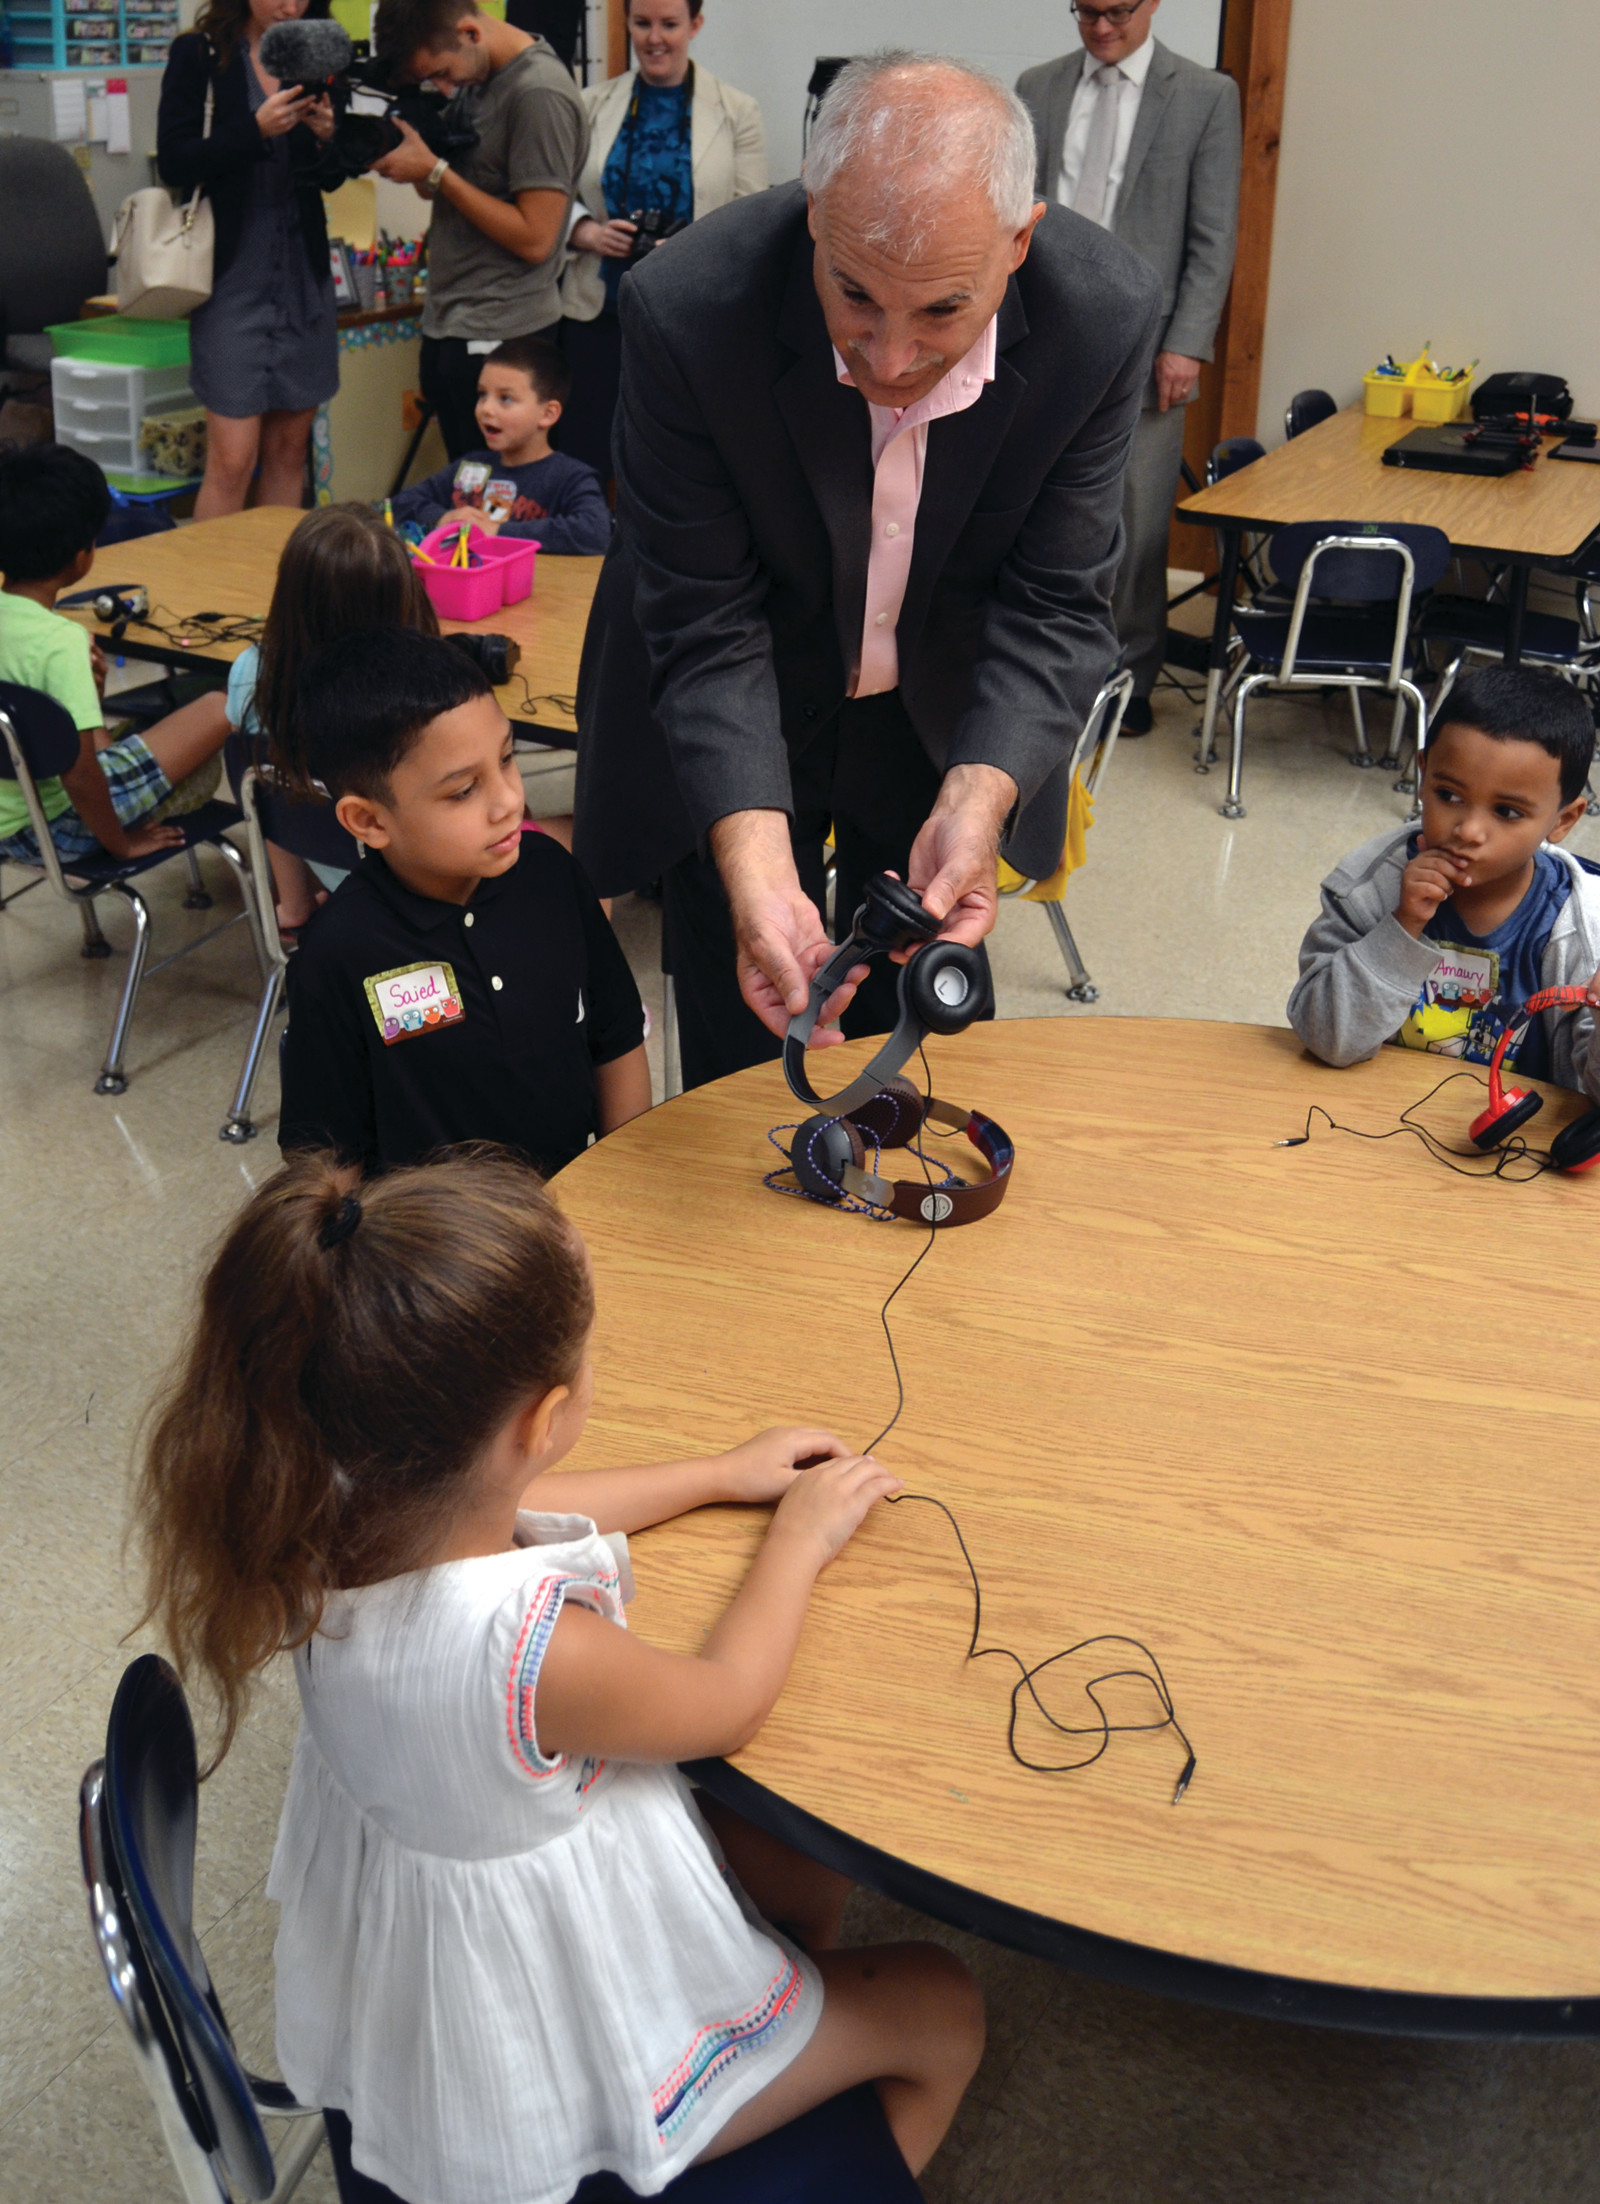 CAN YOU HEAR ME? Mayor Joseph Polisena enjoyed the wide variety of stylish headphones that the students would wear while using Chromebooks.